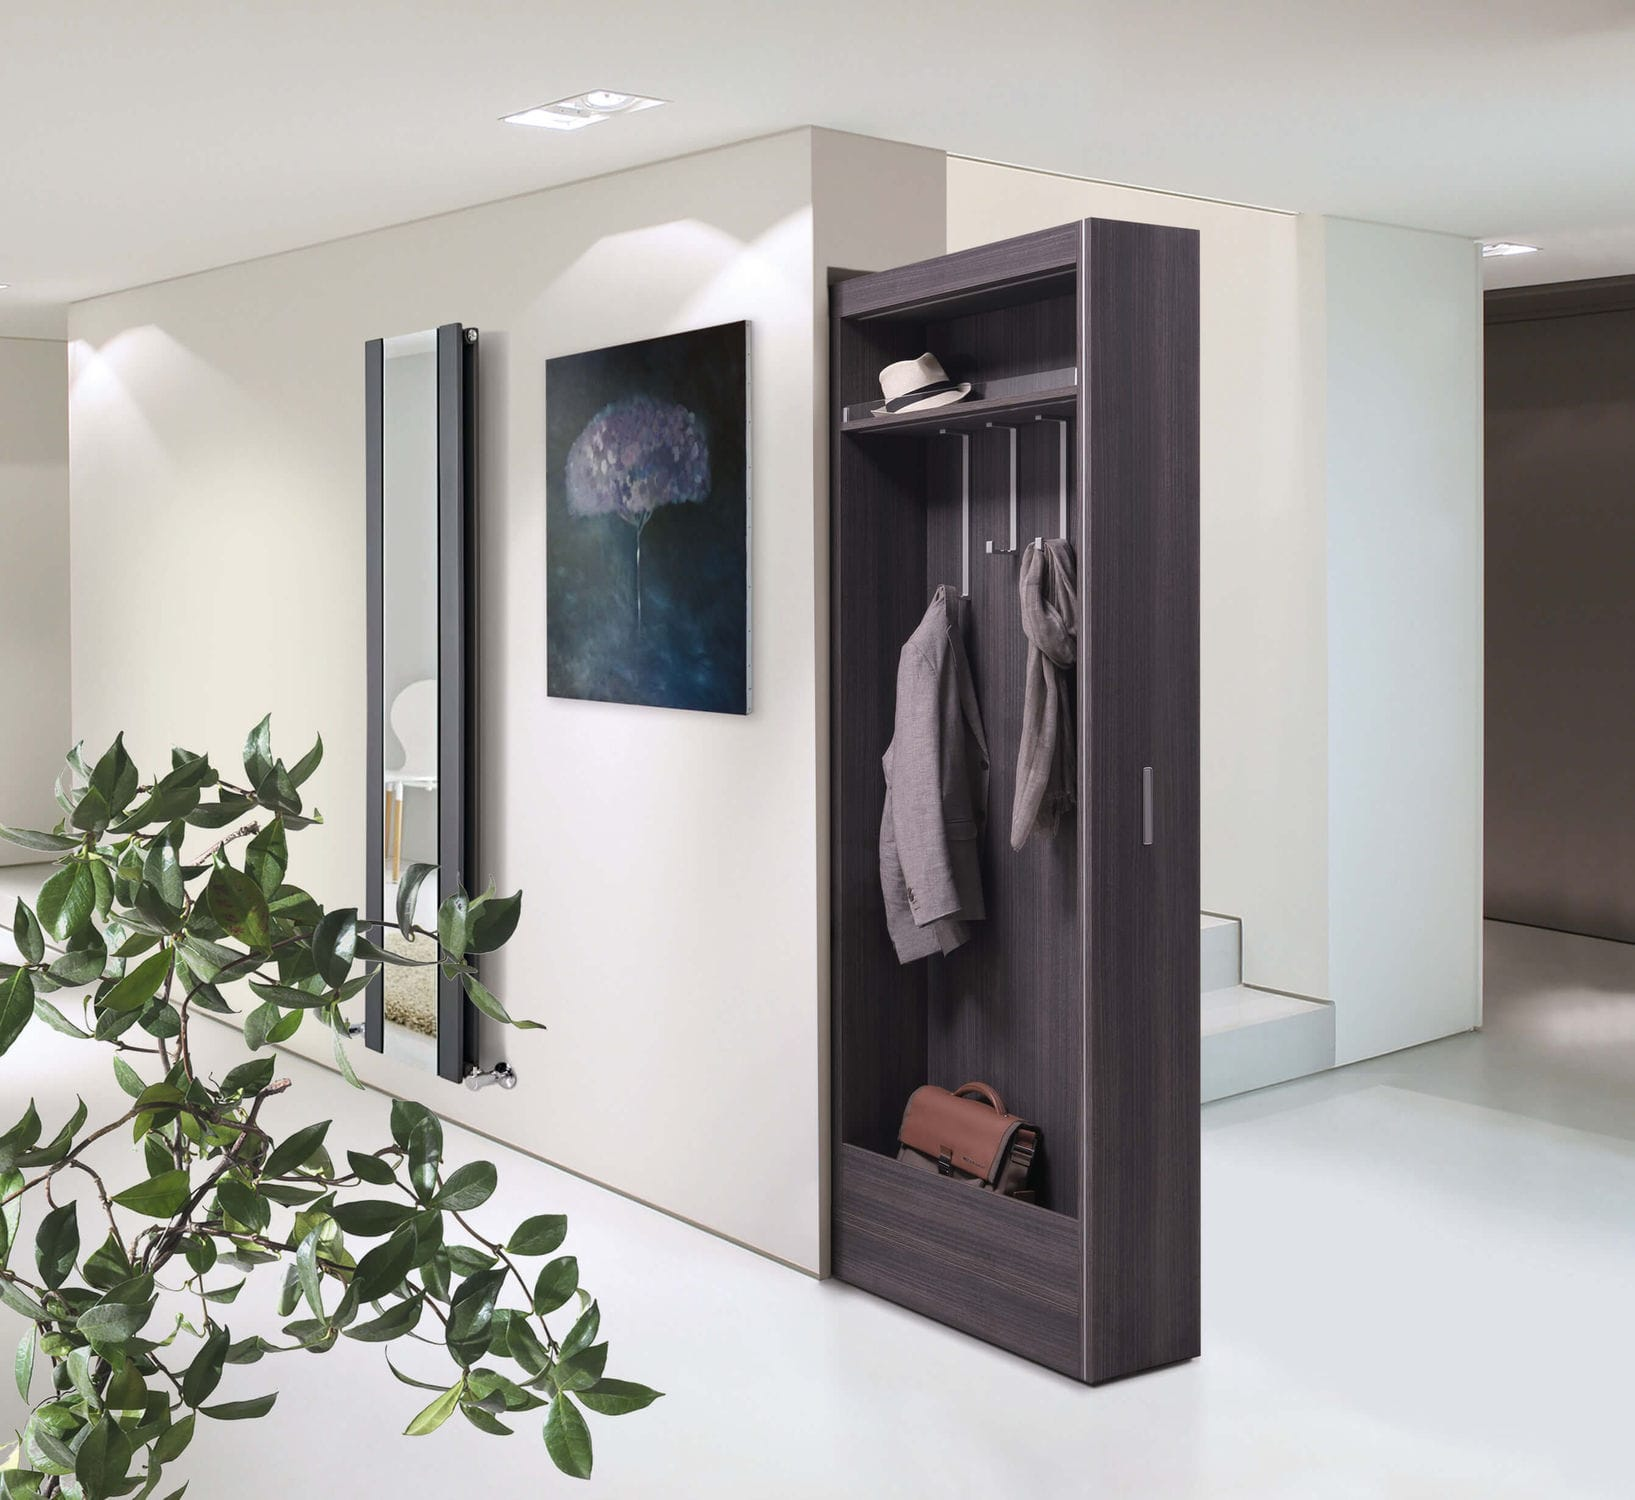 Cappottiera A Muro.Contemporary Walk In Wardrobe Wooden Bigfoot Modulo Cappottiera